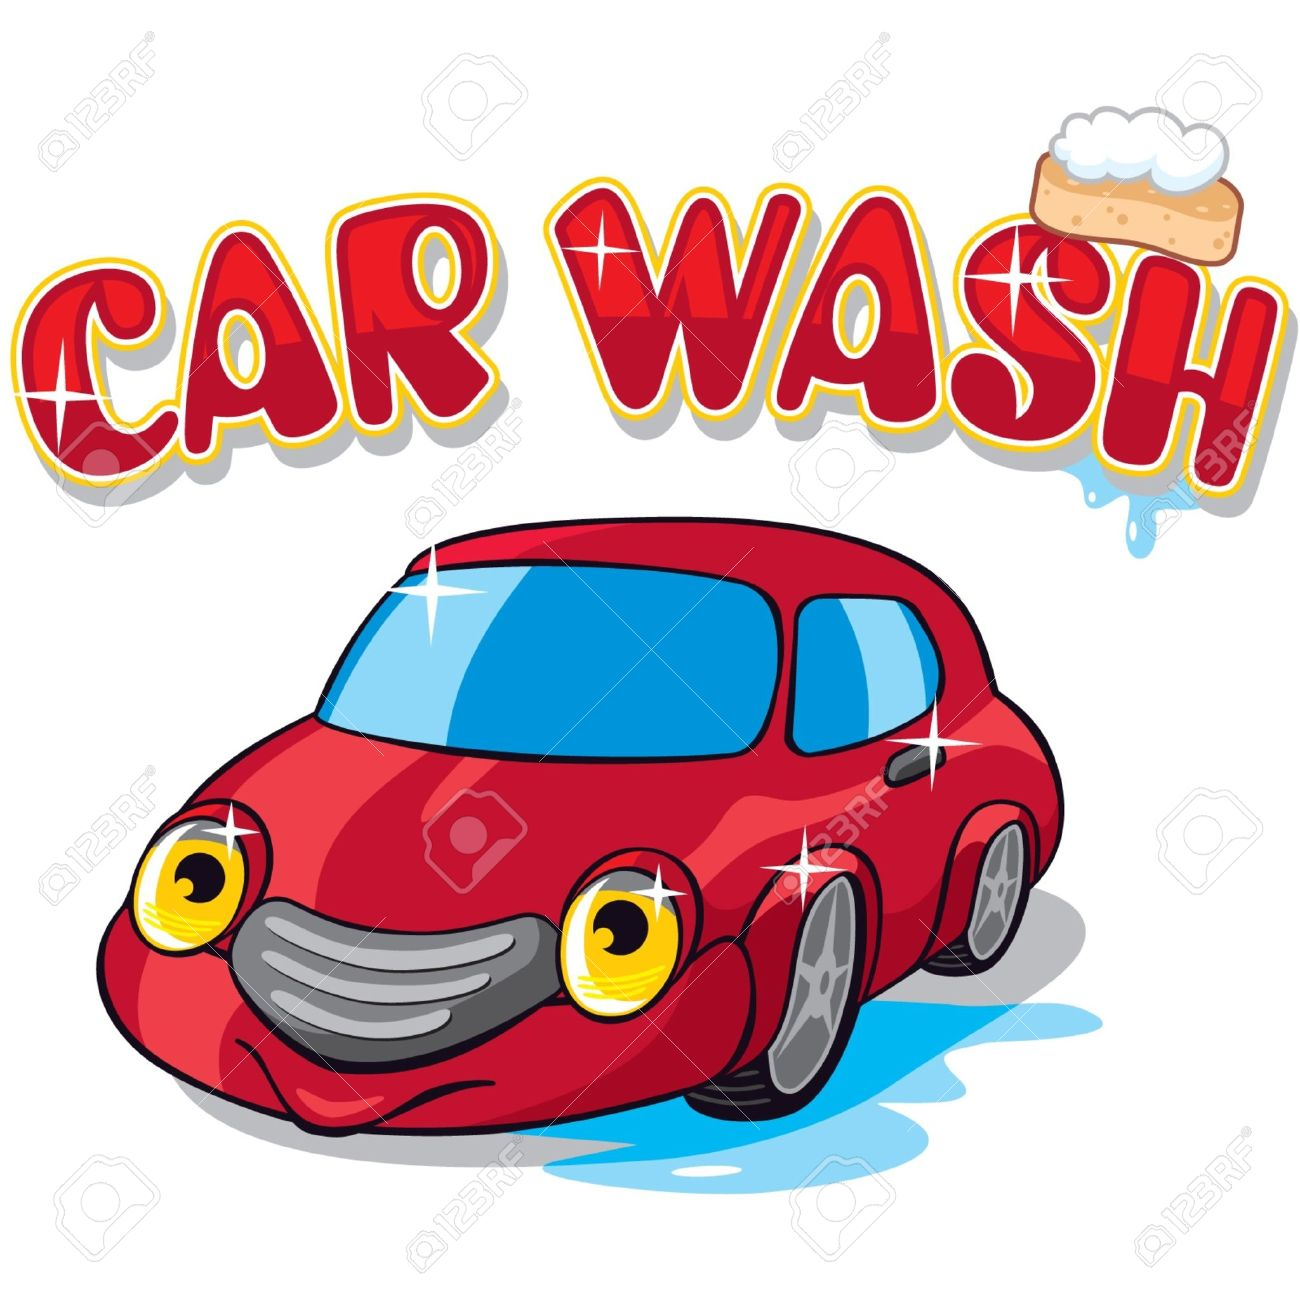 Cartoon car with car wash sign stock vector 11113930